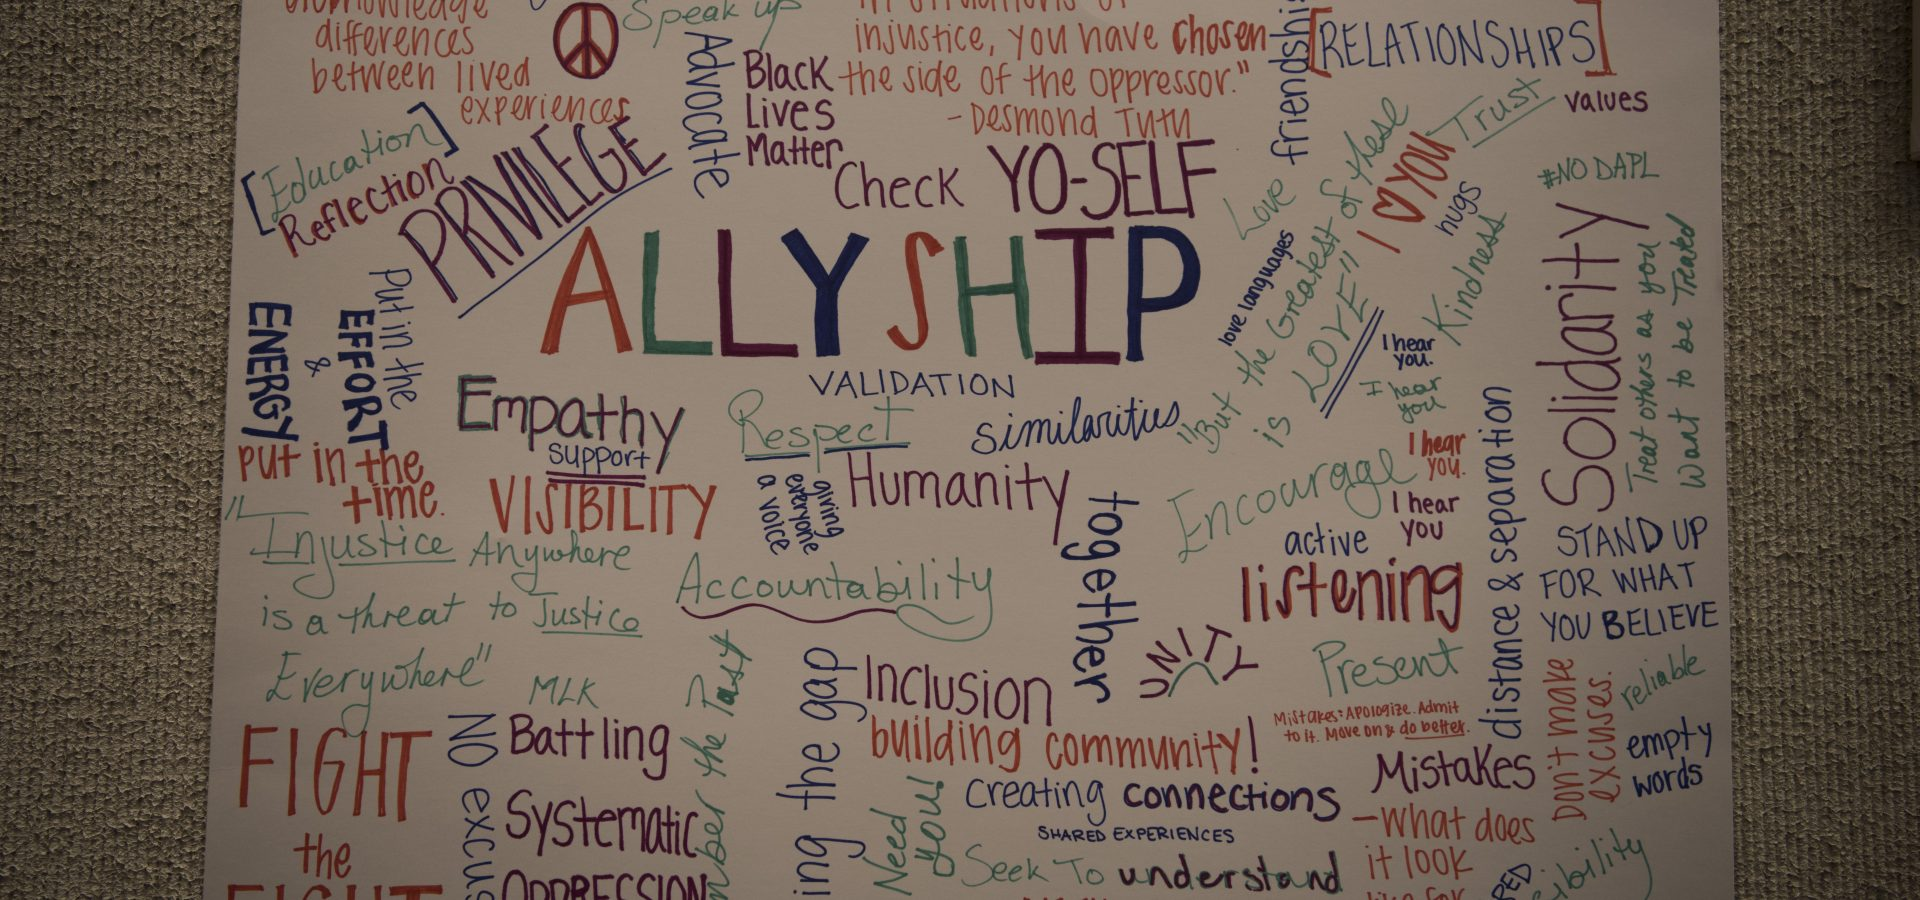 Allyship poster artwork